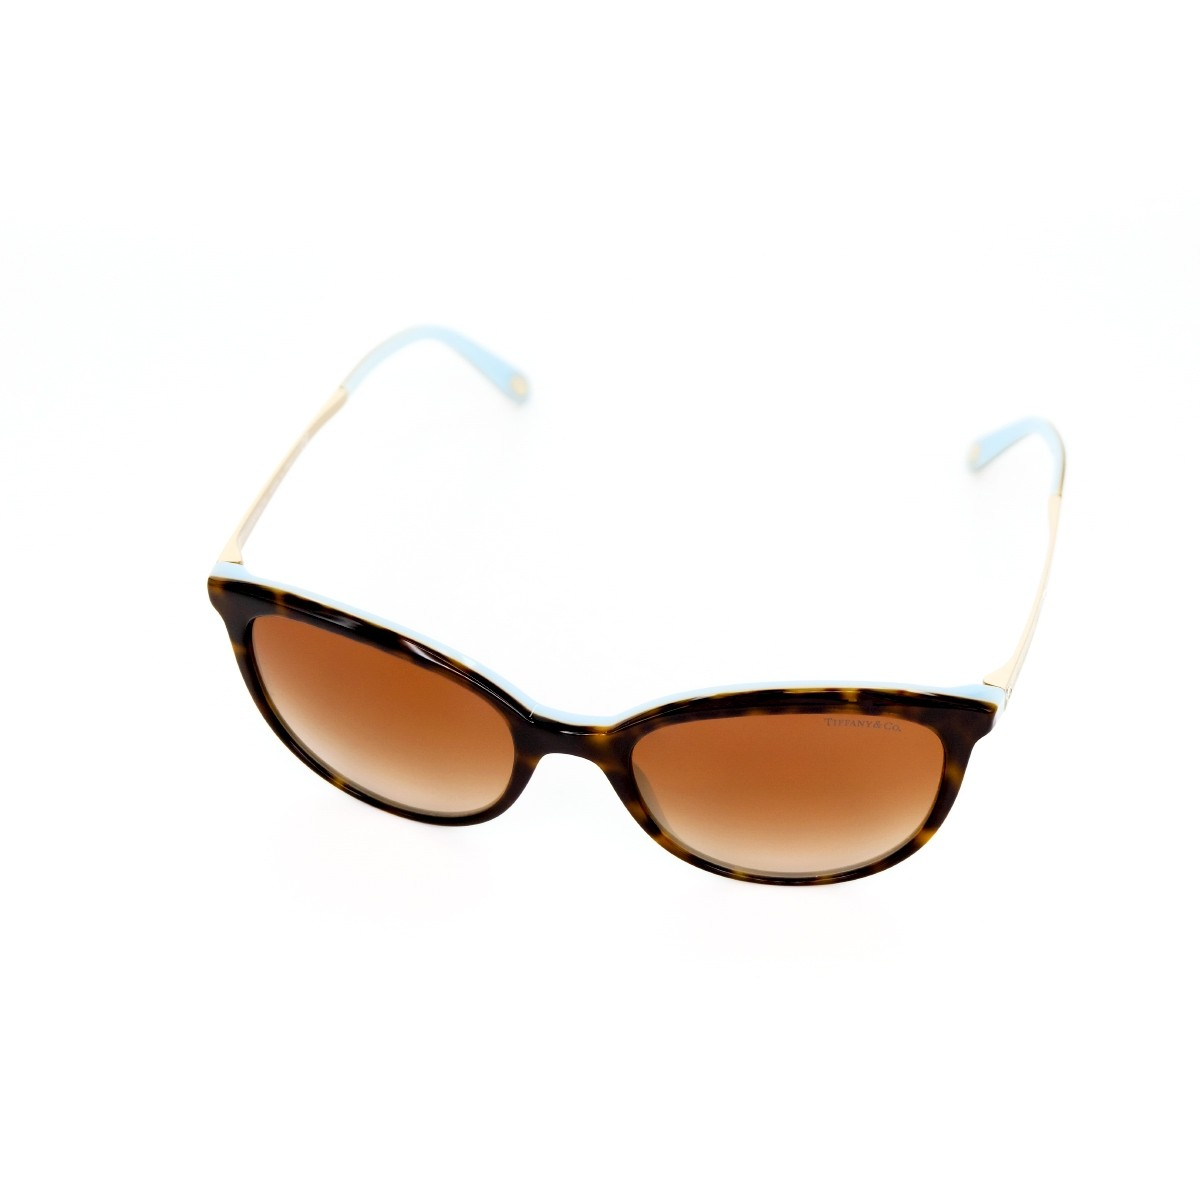 Tiffany 4117B 81343B, 147,00 €, Occhiali Tiffany & Co. Marrone a forma Rotondo